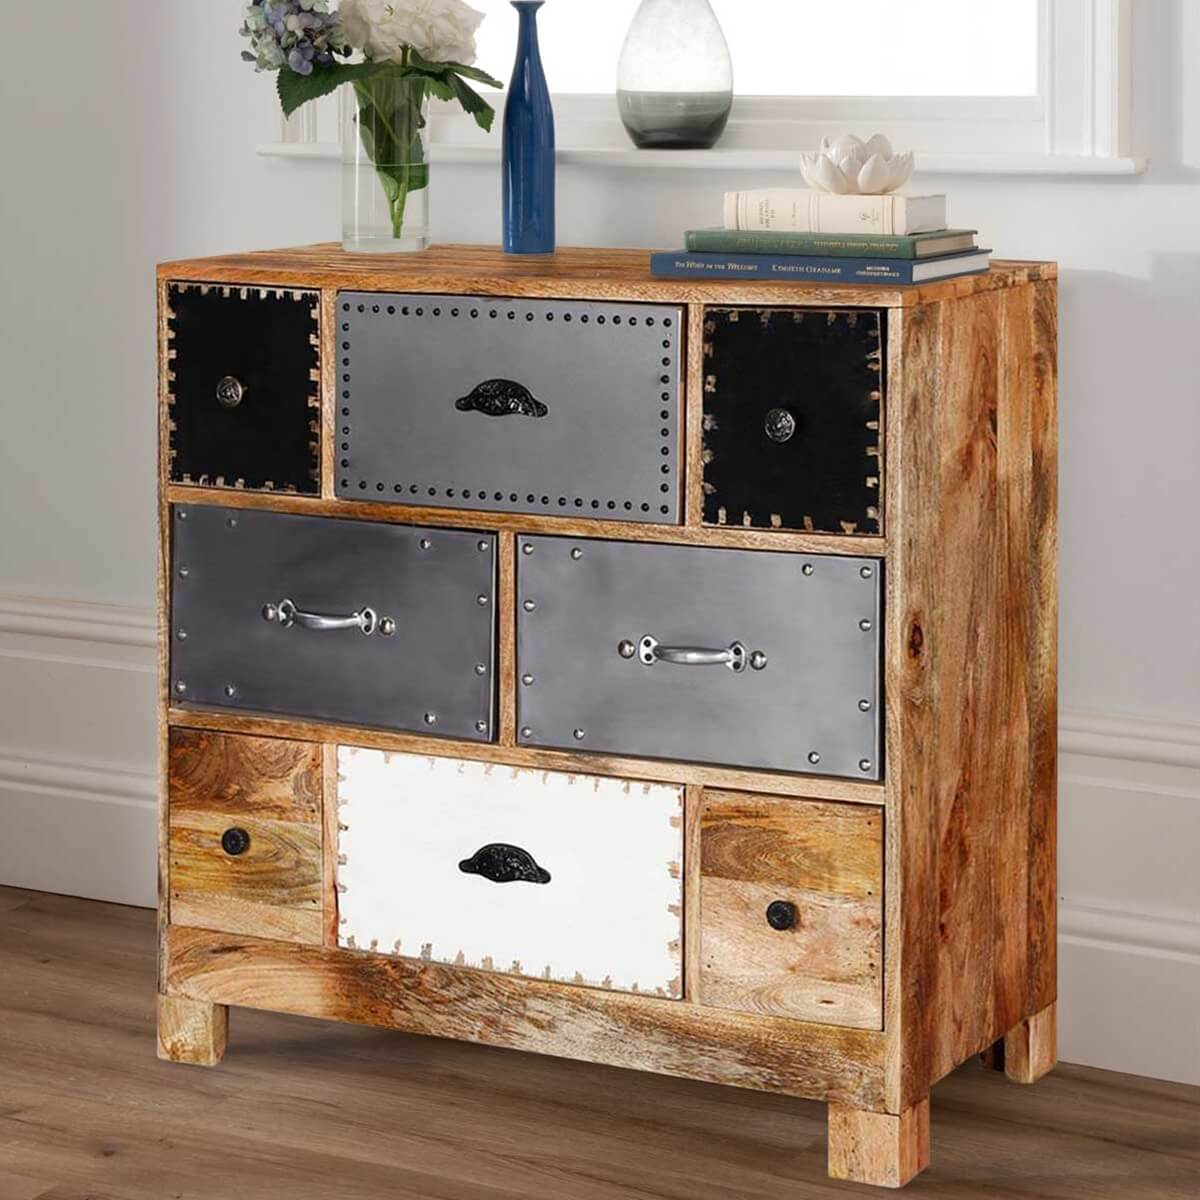 atlanta lacquer iron fulczyk incredible antique brilliant drawer lowboy reclaimed rustic wood west com pertaining to dresser cheap throughout elm contemporary furniture